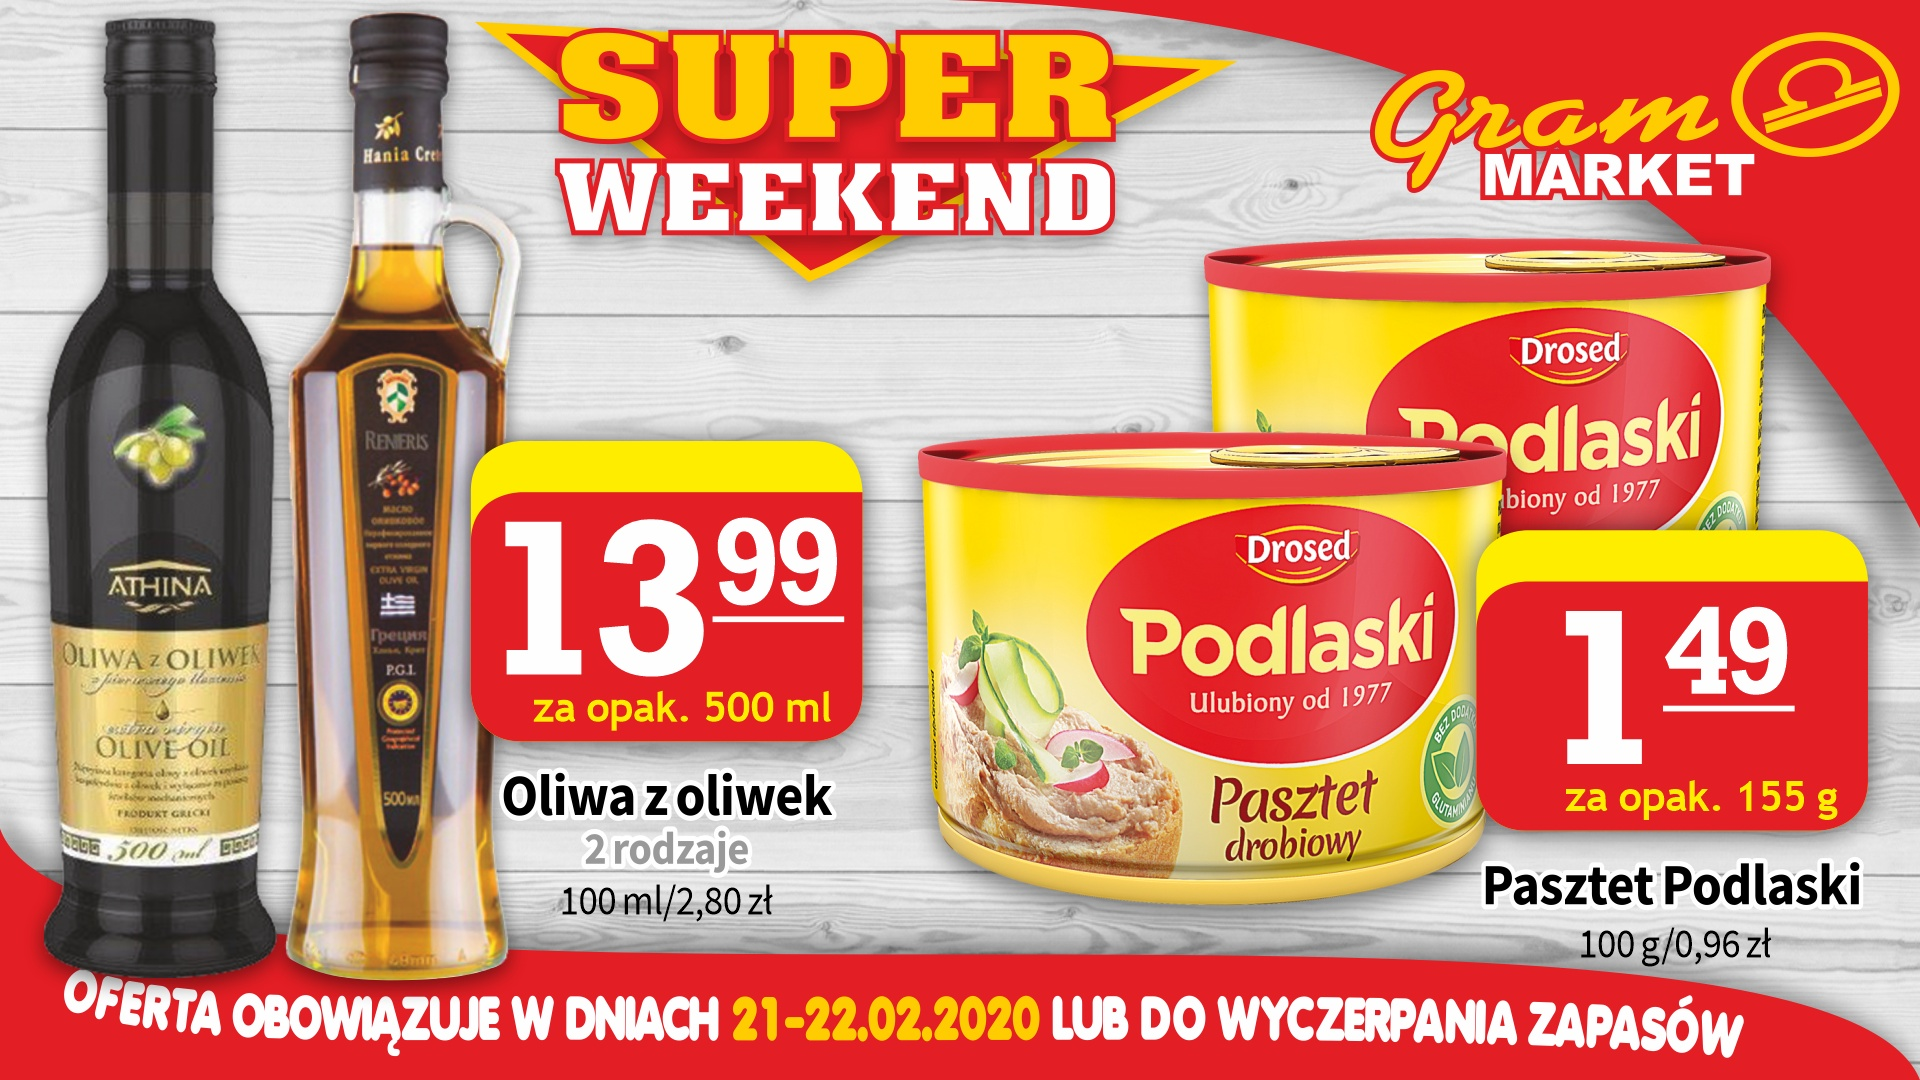 SUPER_WEEKEND-21-22-7